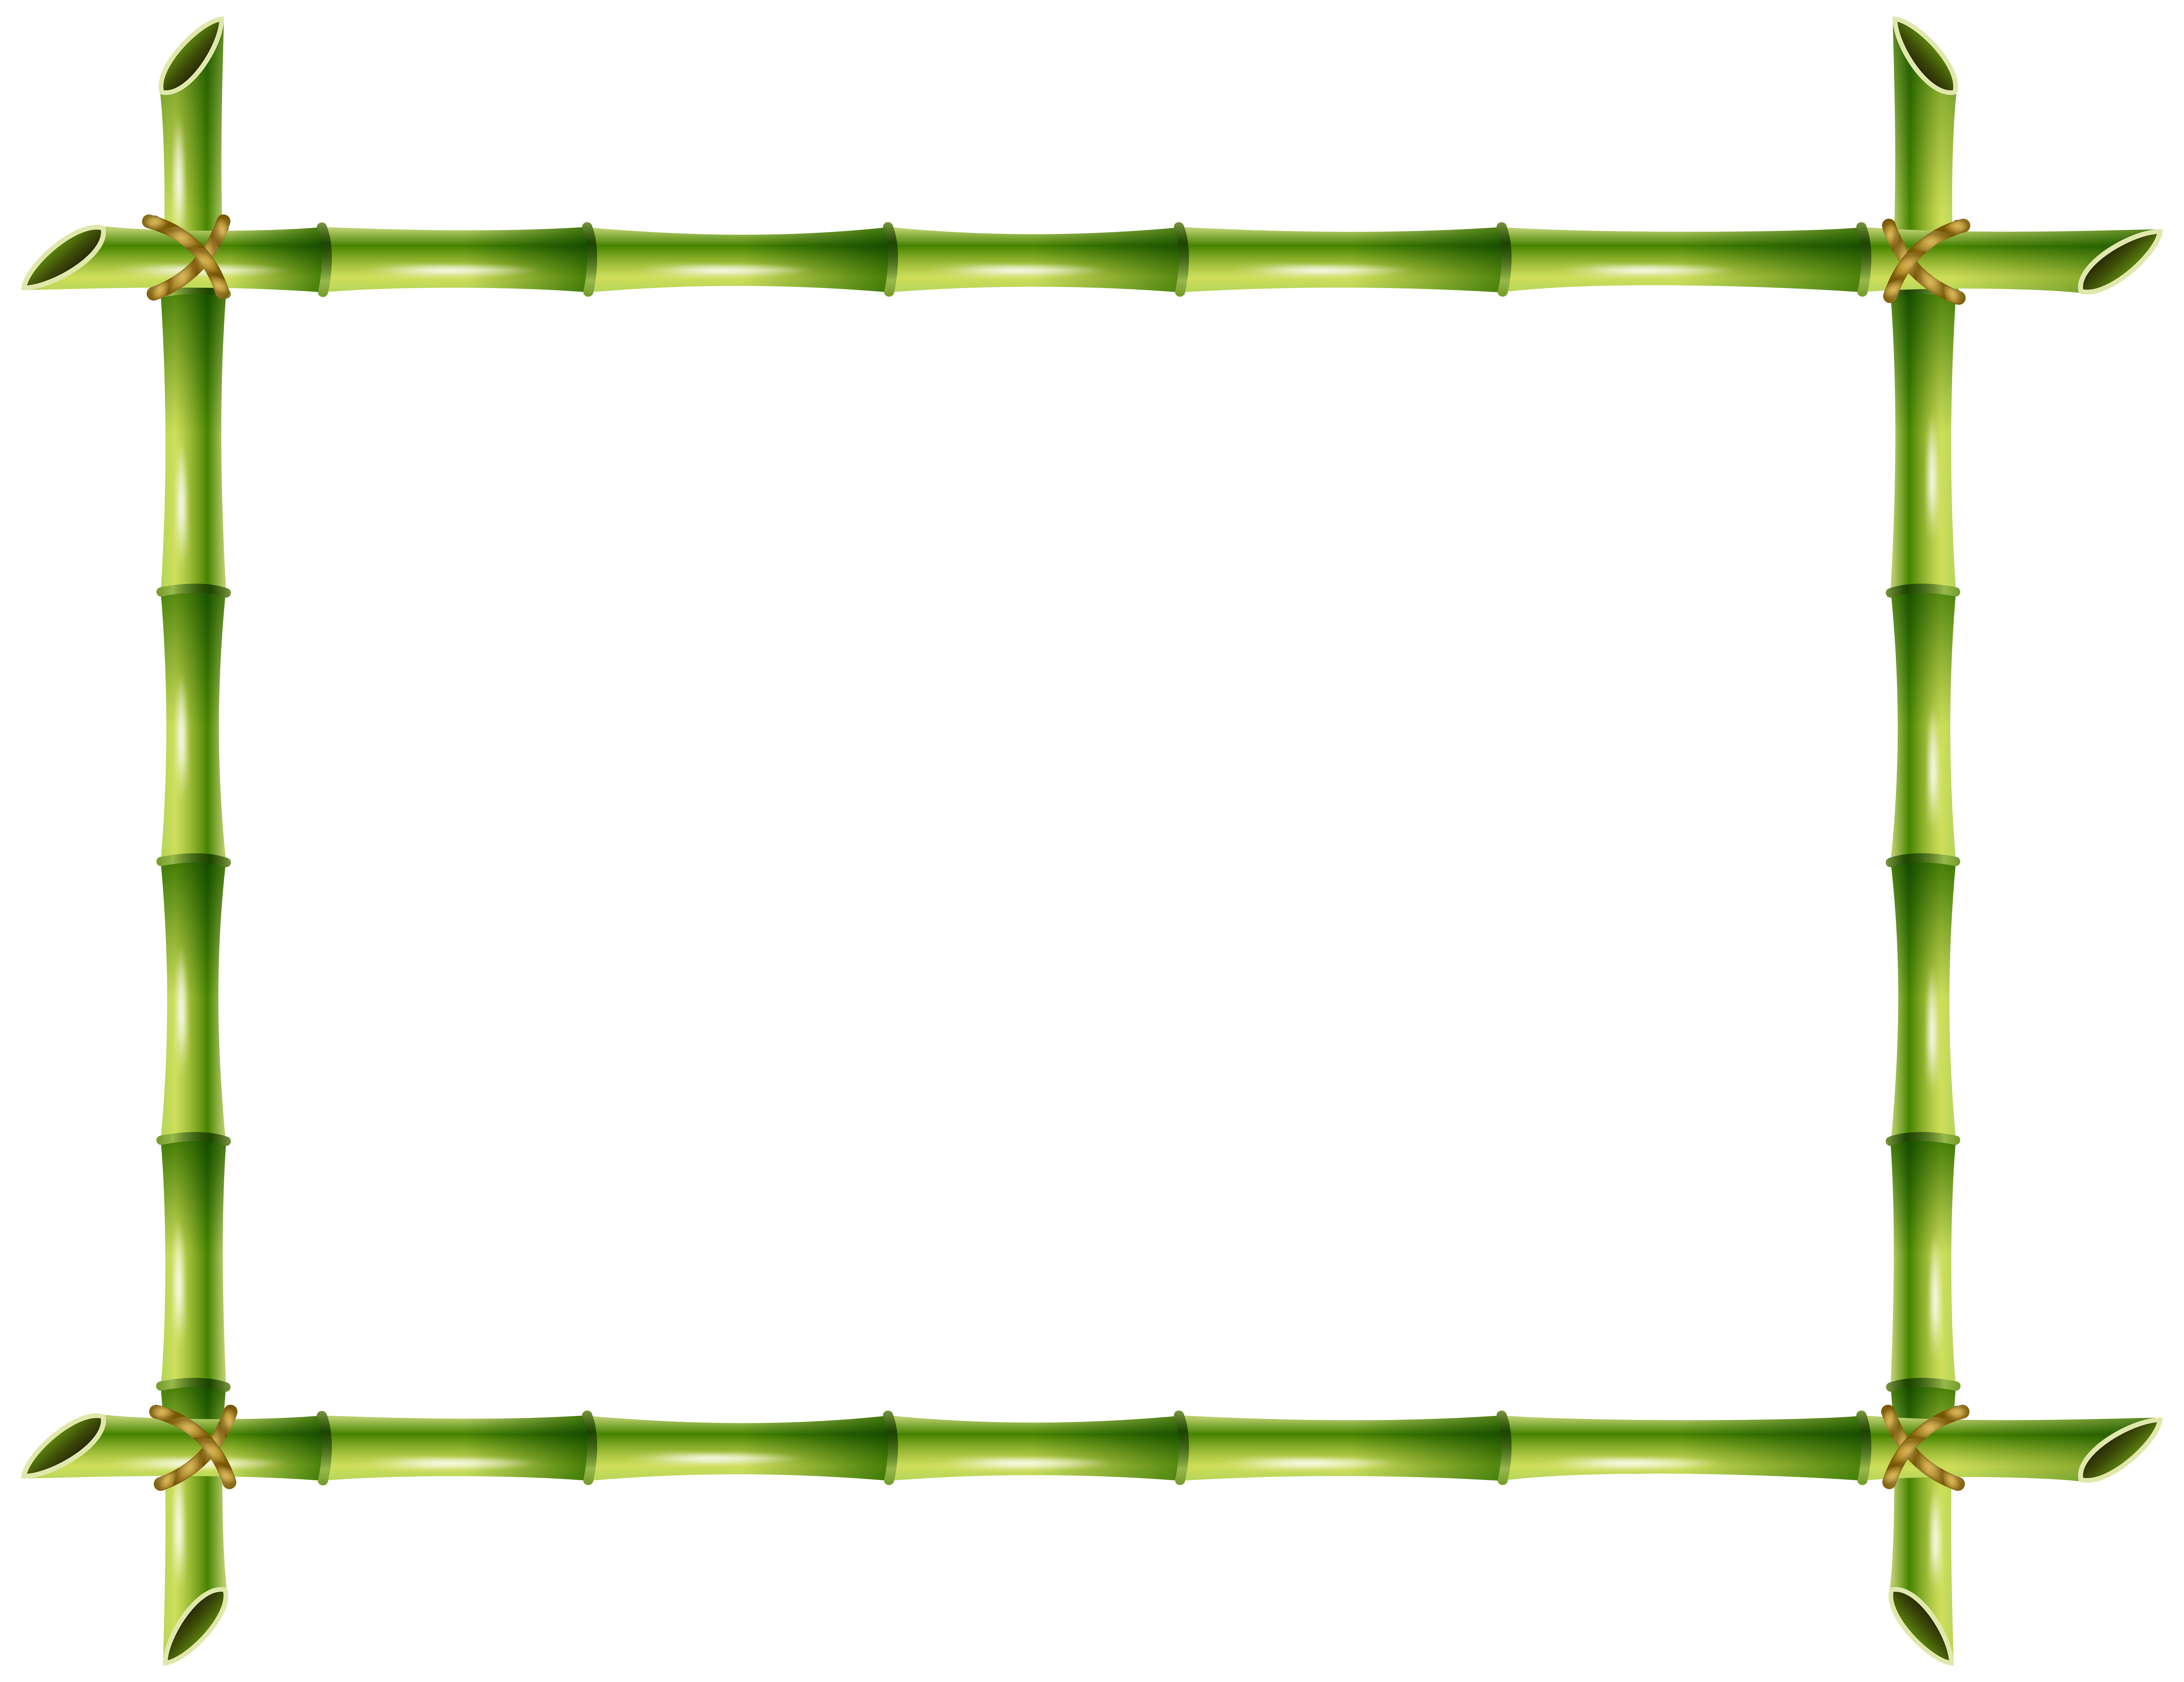 Transparent frame clipart clipground bamboo frame clipart jeuxipadfo Gallery